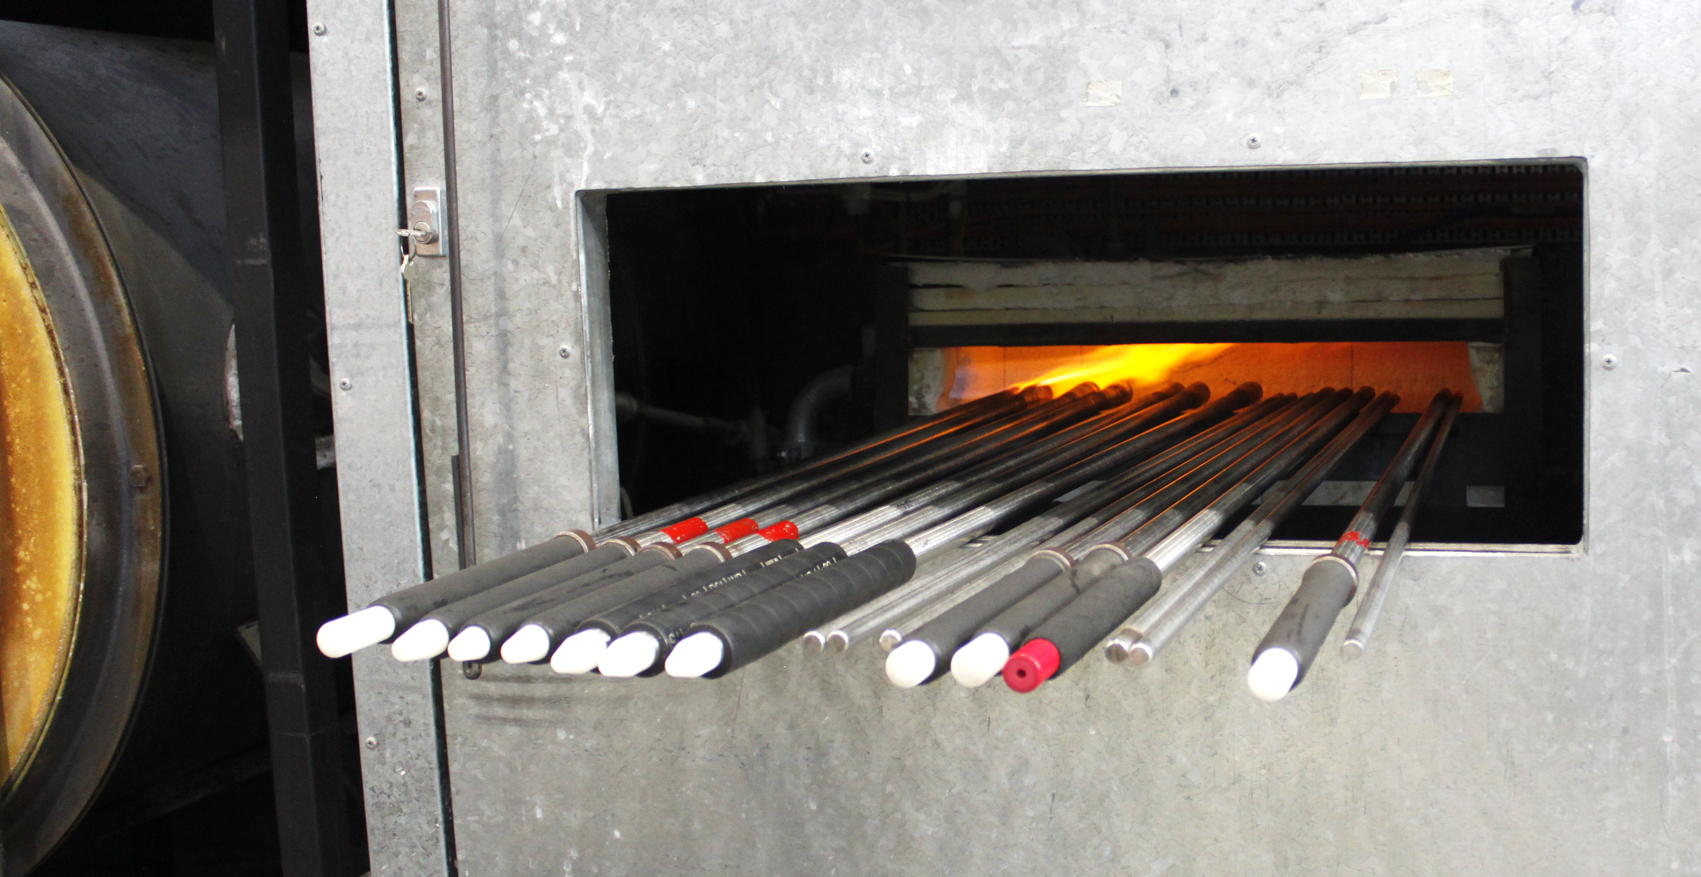 The glass blowing poles heating up.